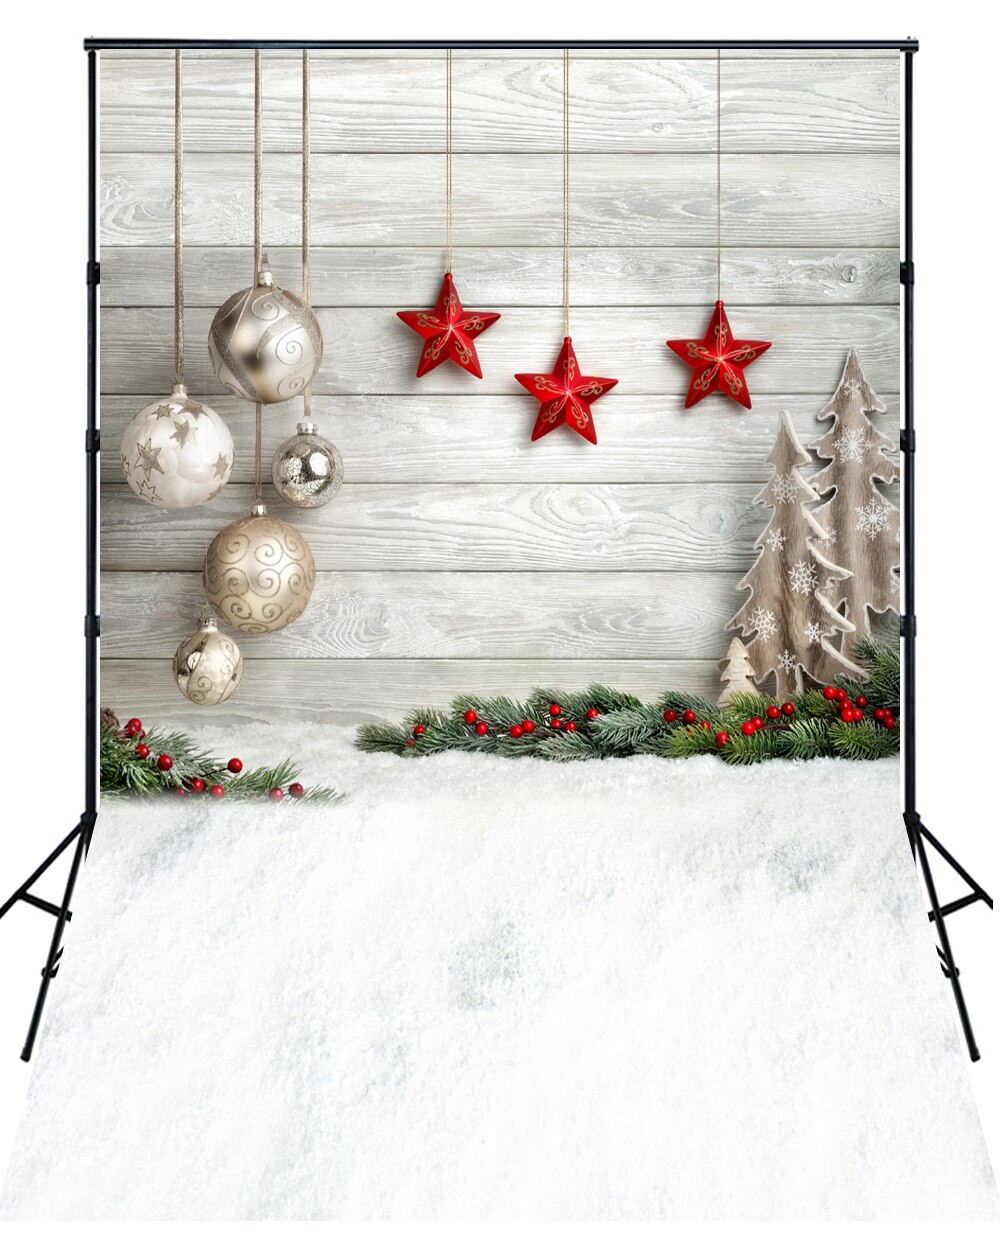 Best ideas about DIY Christmas Photography . Save or Pin line Buy Wholesale christmas photography children from Now.